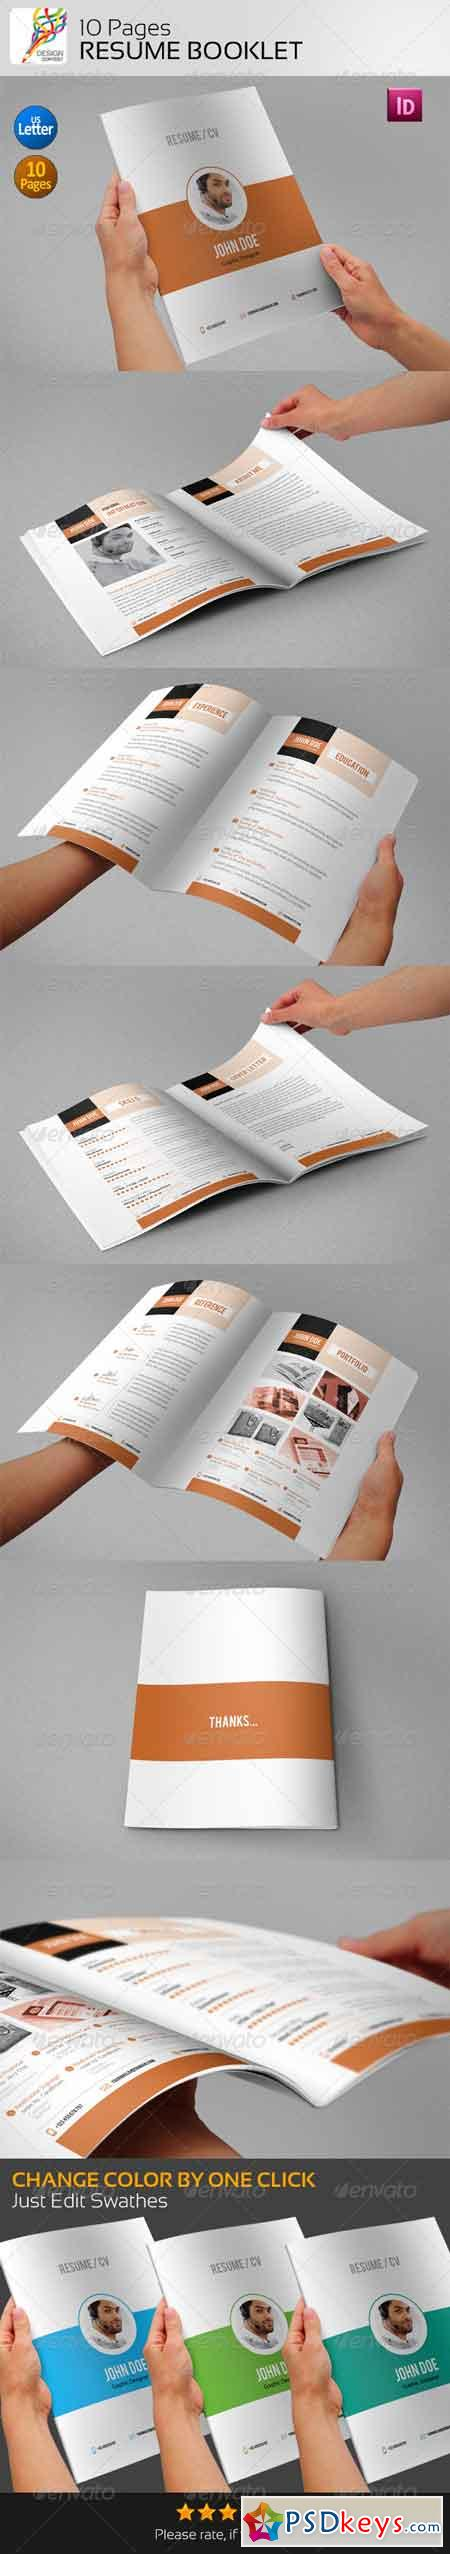 Resume Booklet (10 Pages) 5131822